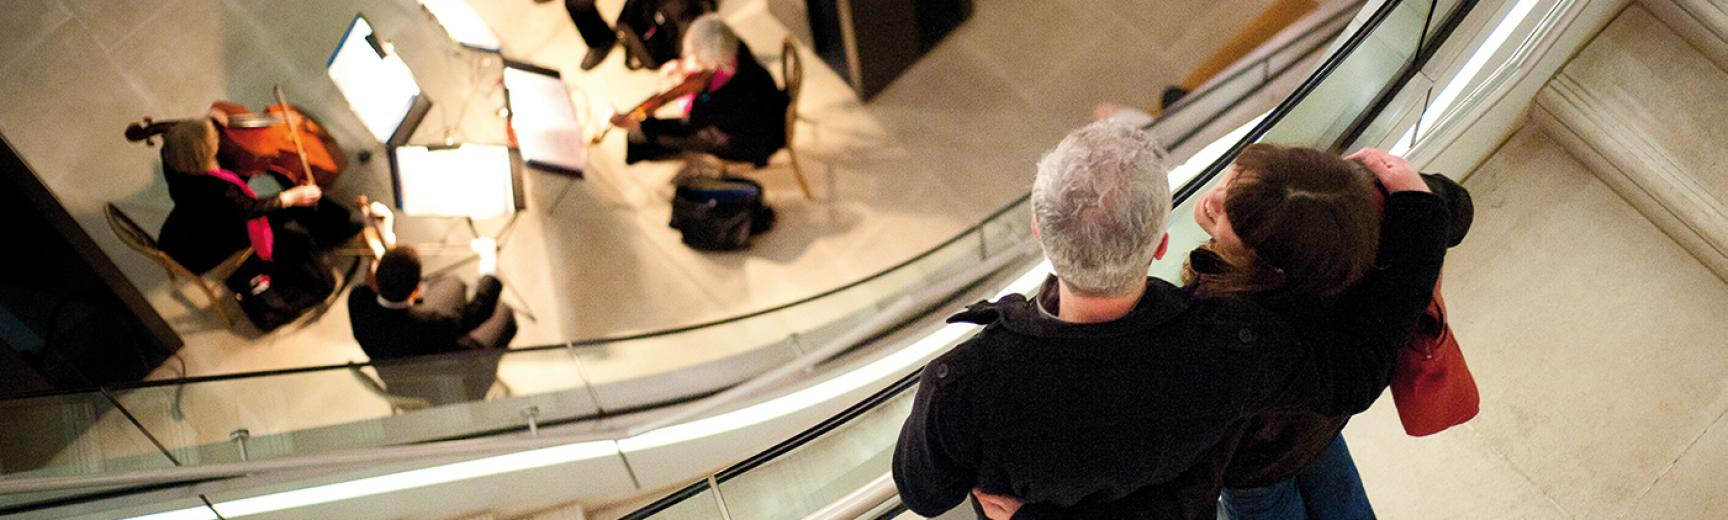 Patrons of the Ashmolean Museum – Music in the Atrium